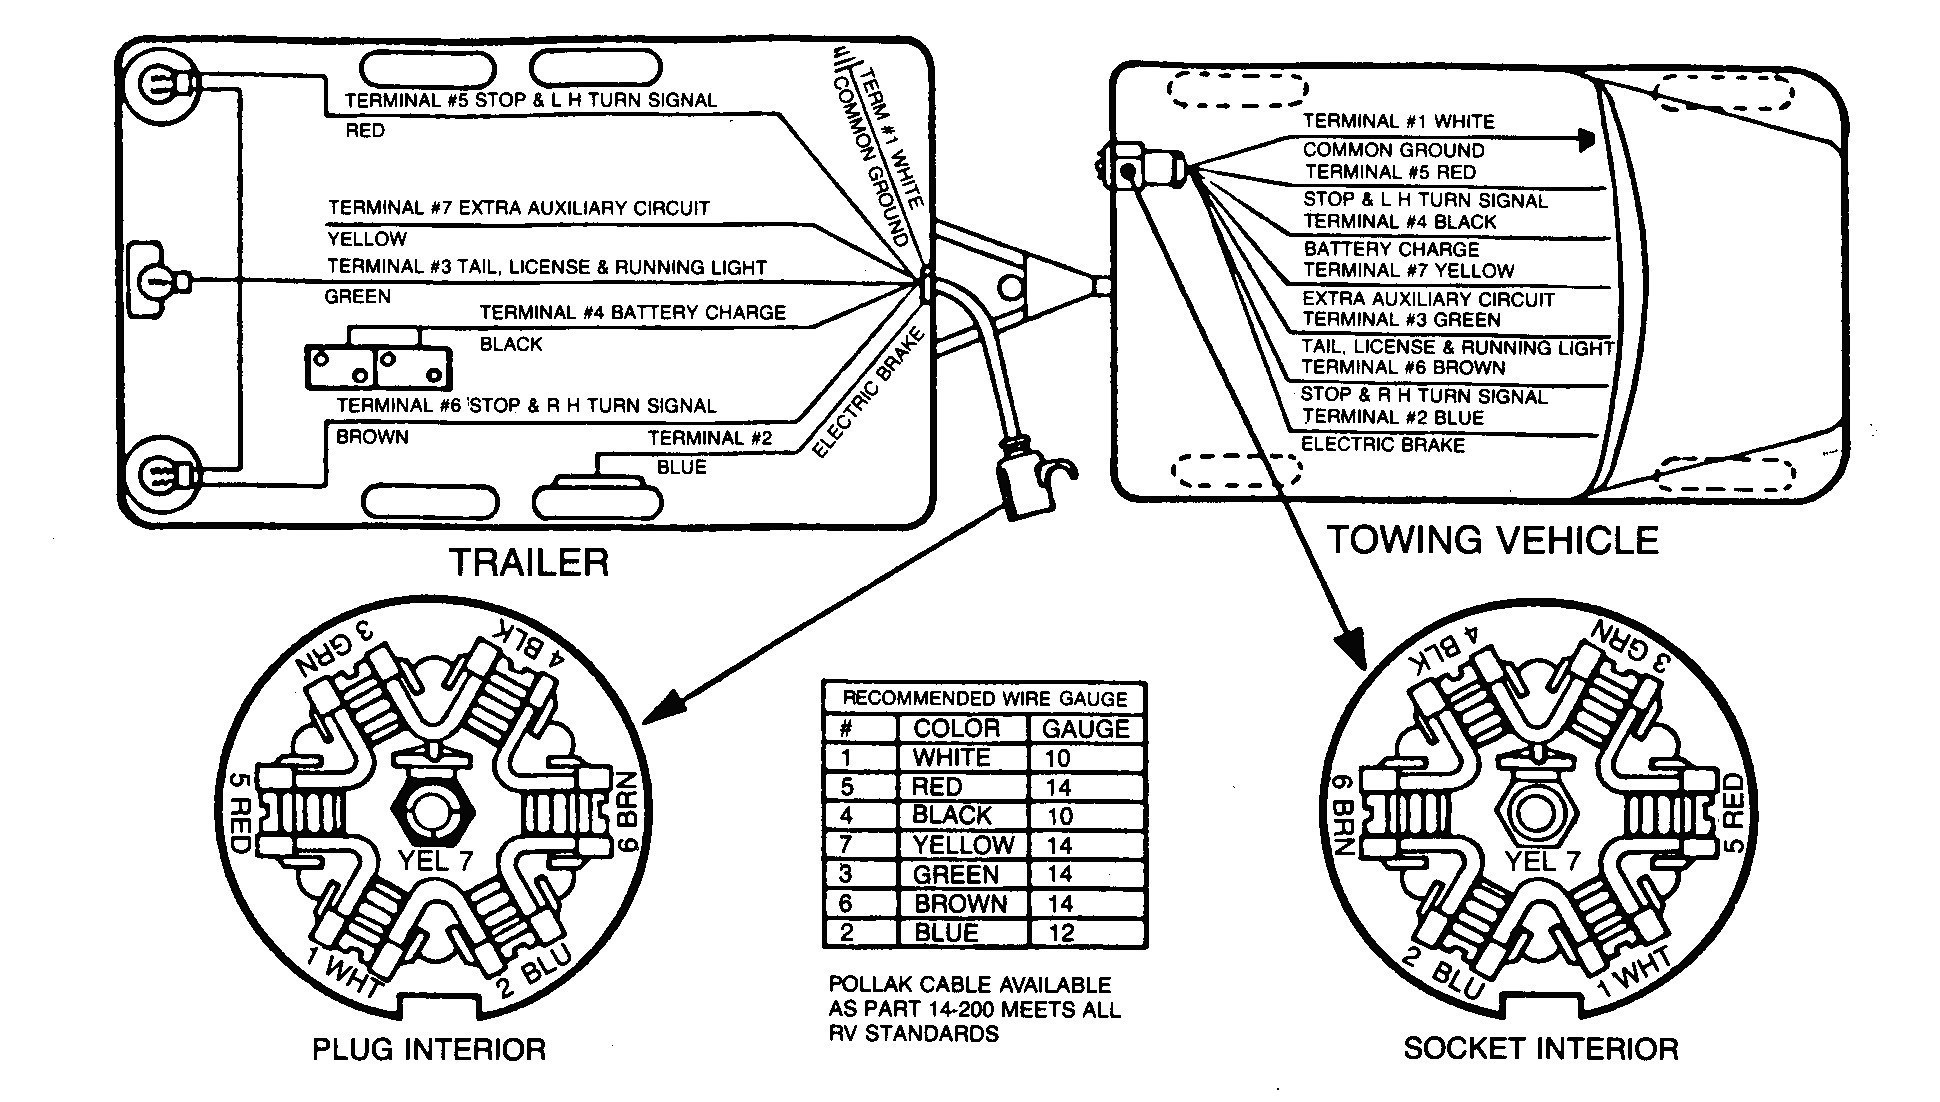 6 Pin Wiring Diagram Gm - Detailed Wiring Diagram - 6 Pin To 7 Pin Trailer Adapter Wiring Diagram